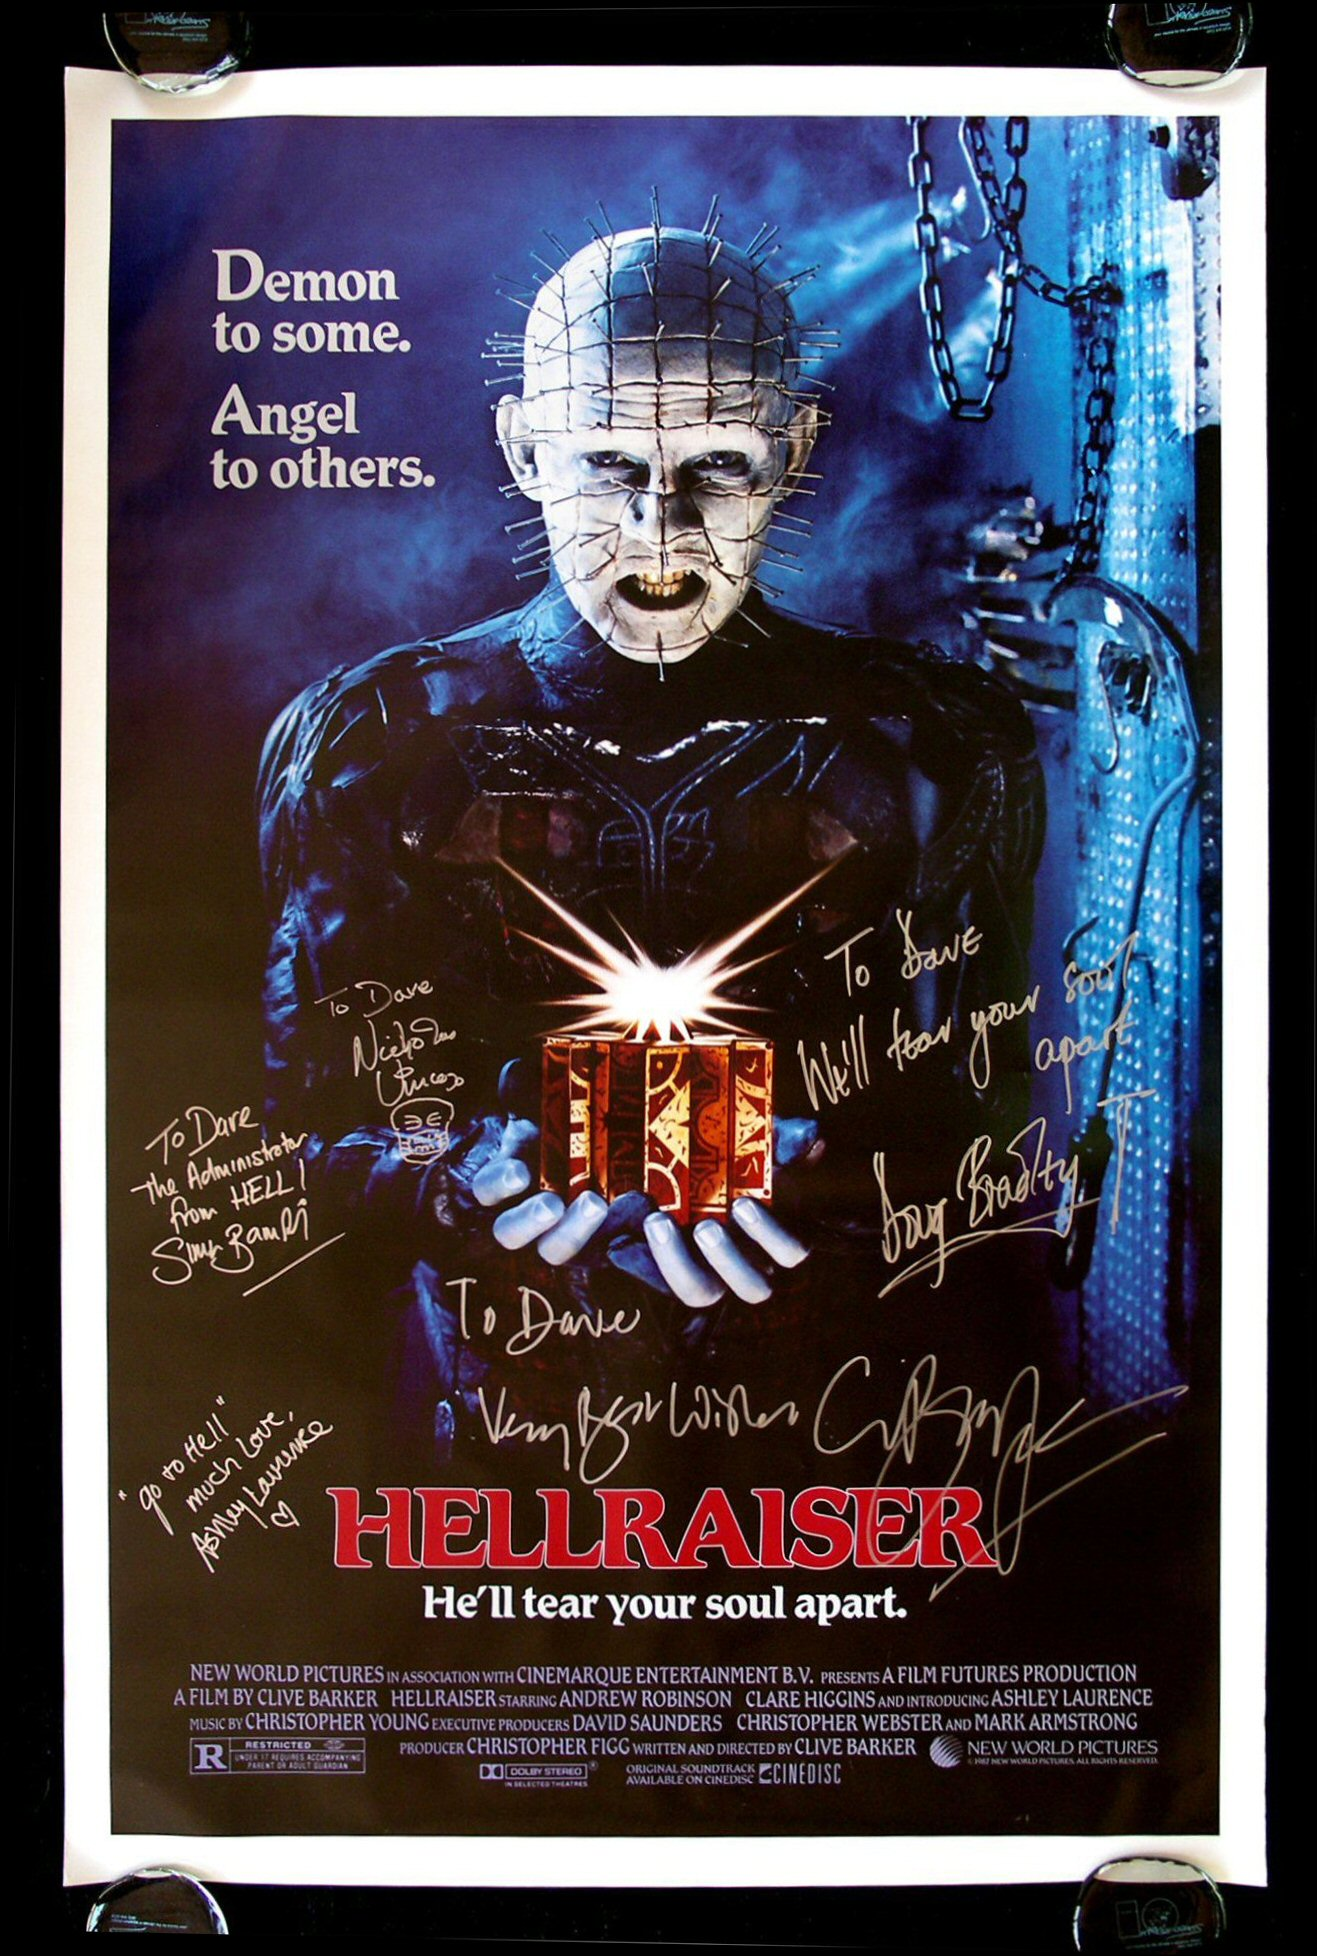 Original hellraiser movie poster